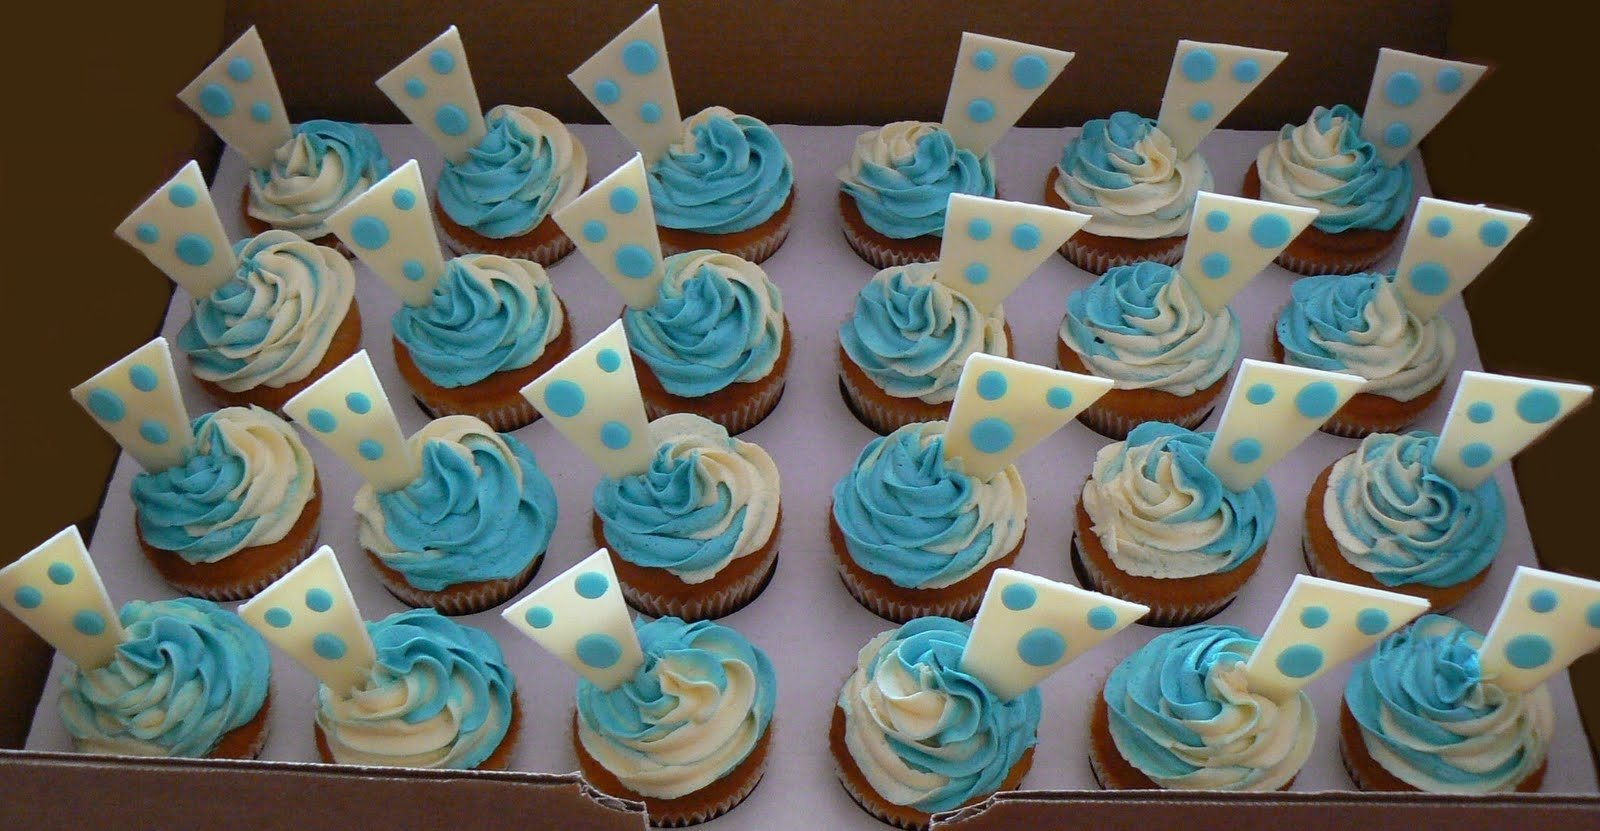 10 Lovely Cupcake Ideas For Baby Shower 70 baby shower cakes and cupcakes ideas 6 2021